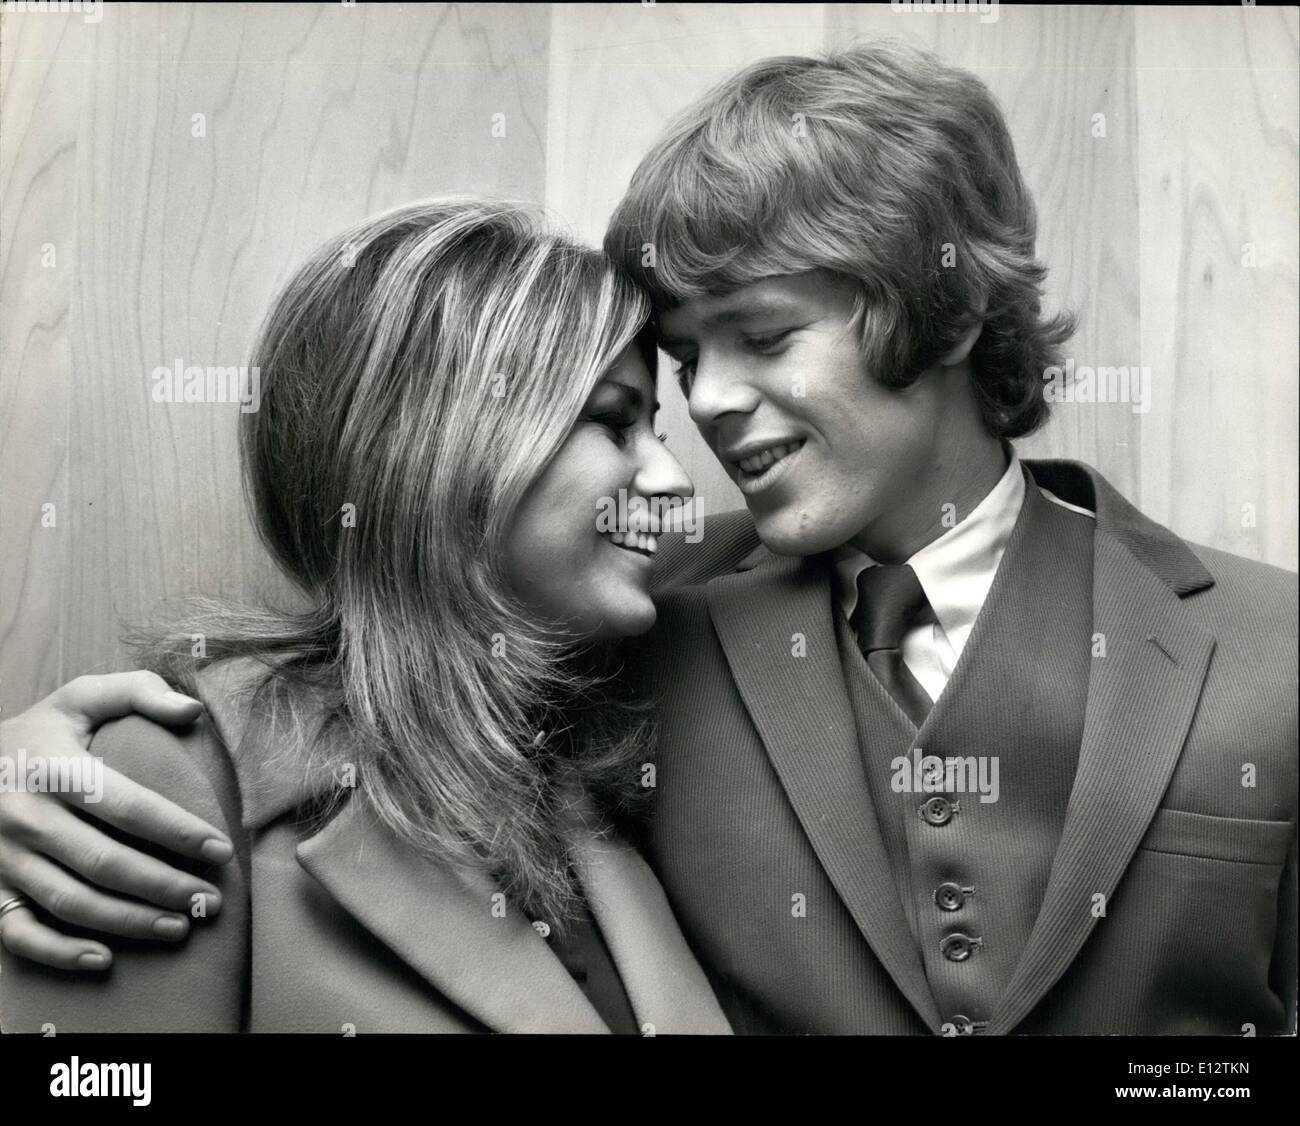 Feb. 24, 2012 - The Hermit Takes a Bride. Herman the leader of the Hermits pop group has, it seems, given up his hermitage. For - Stock Image